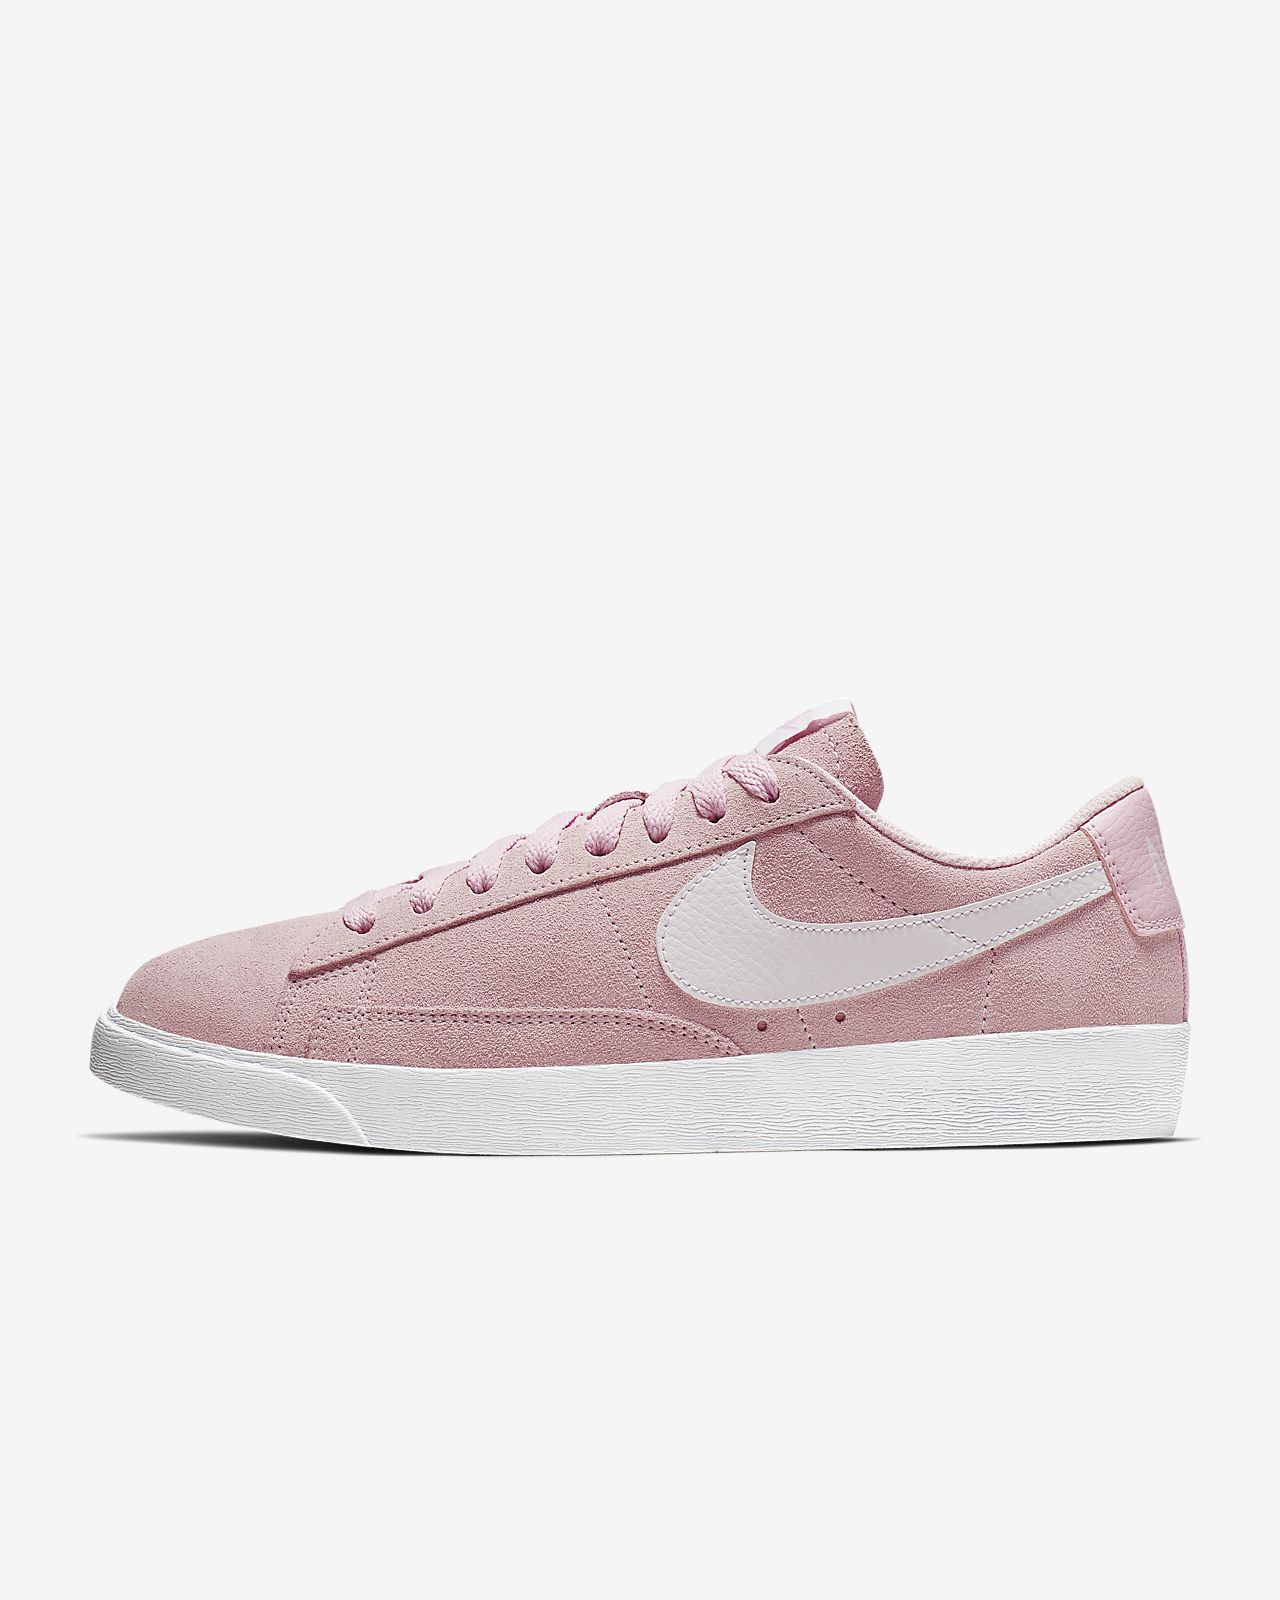 100% authentic d9eb2 acfc0 ... Nike Blazer Low Suede Women s Shoe